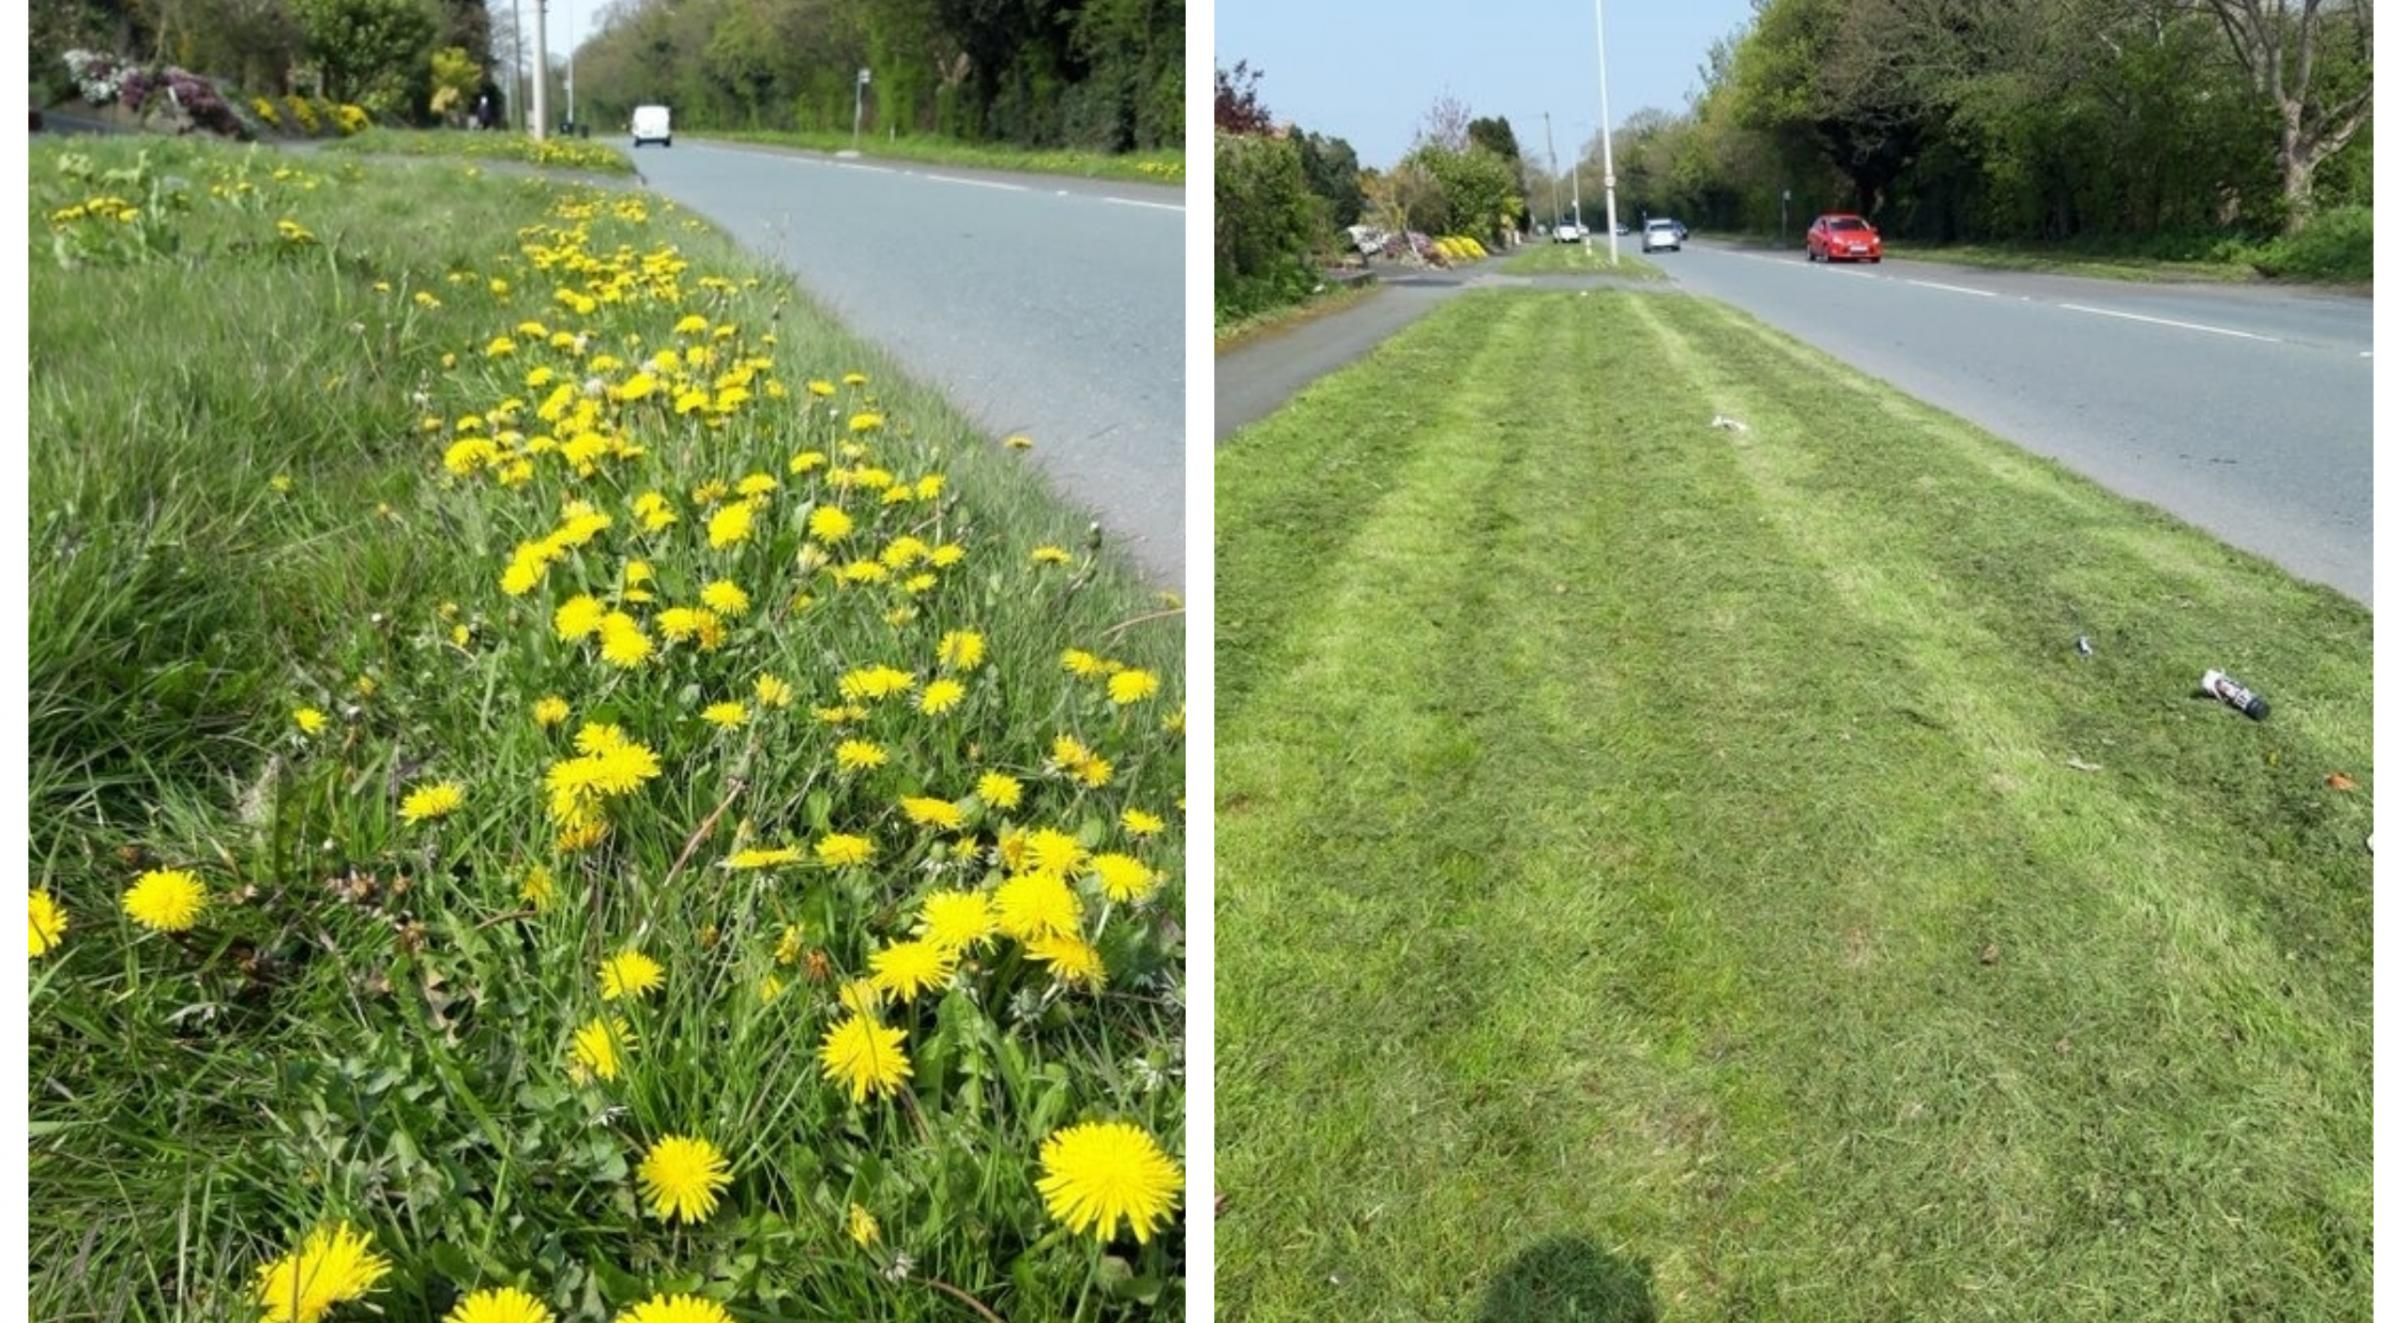 Before and after pictures of the verge on Parkgate Road. Pictures by Andy Scargill.